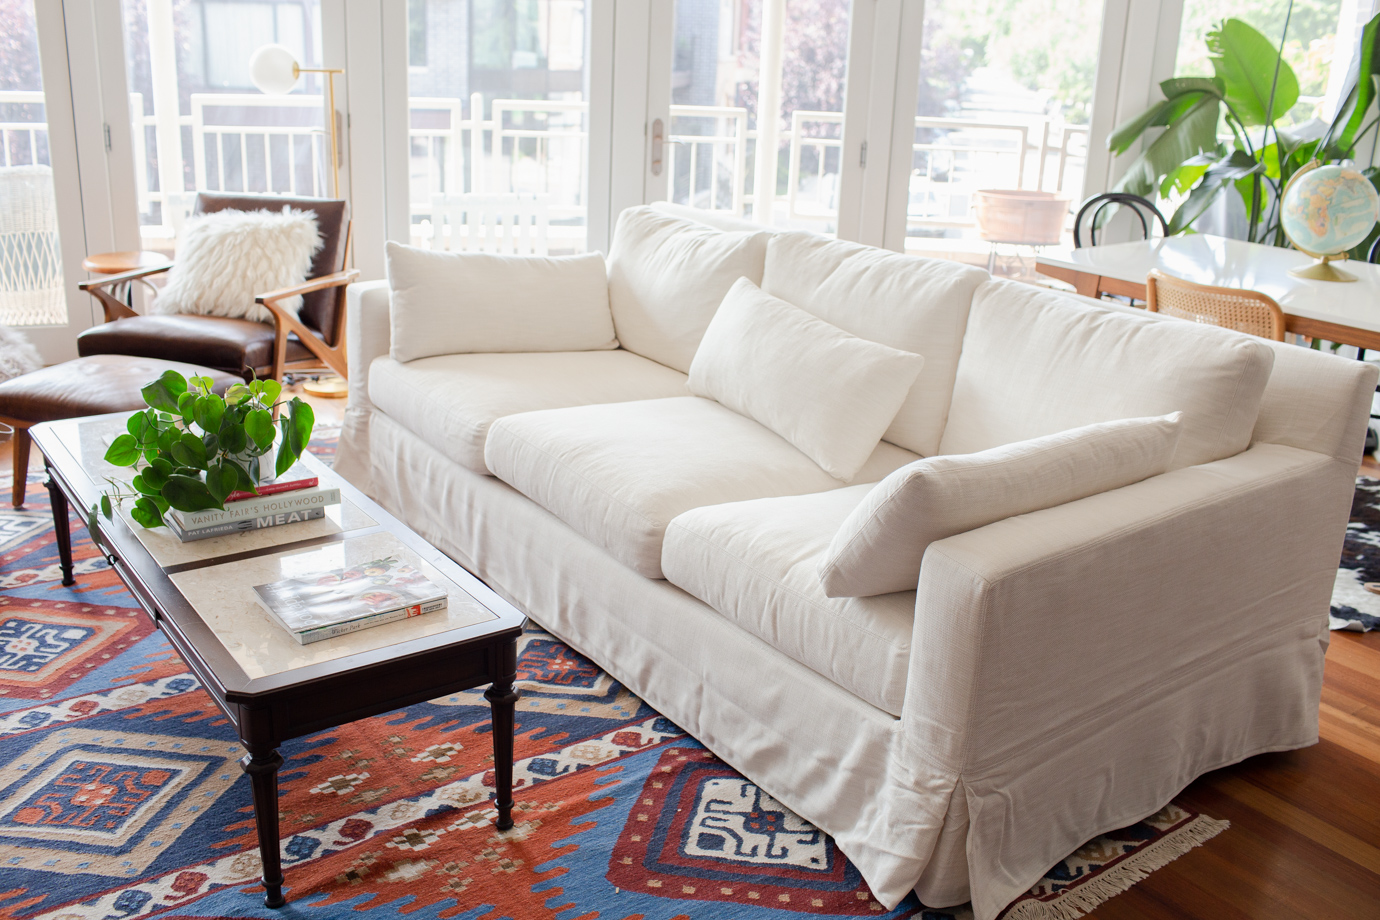 pottery barn sofa review the shop by comforts of home how to choose perfect 43 york